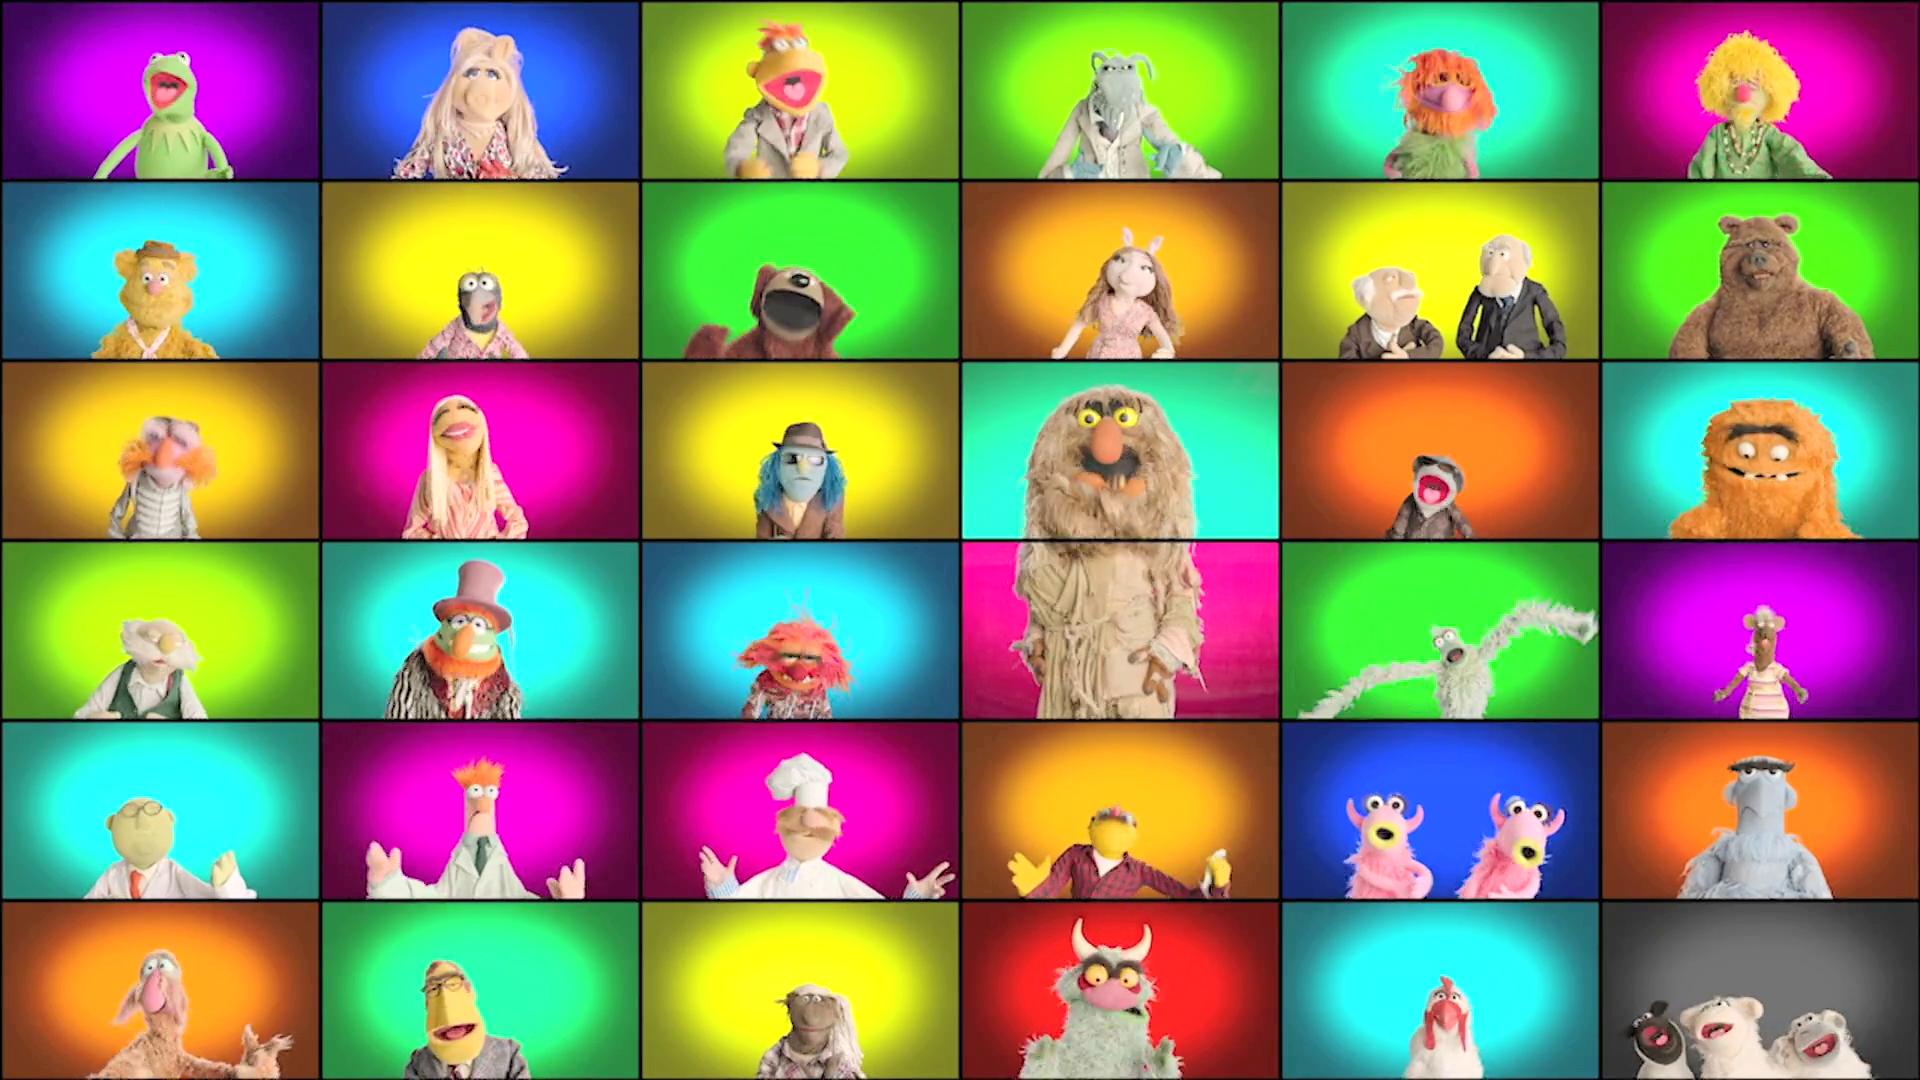 The Muppets Recreate a Classic Tune